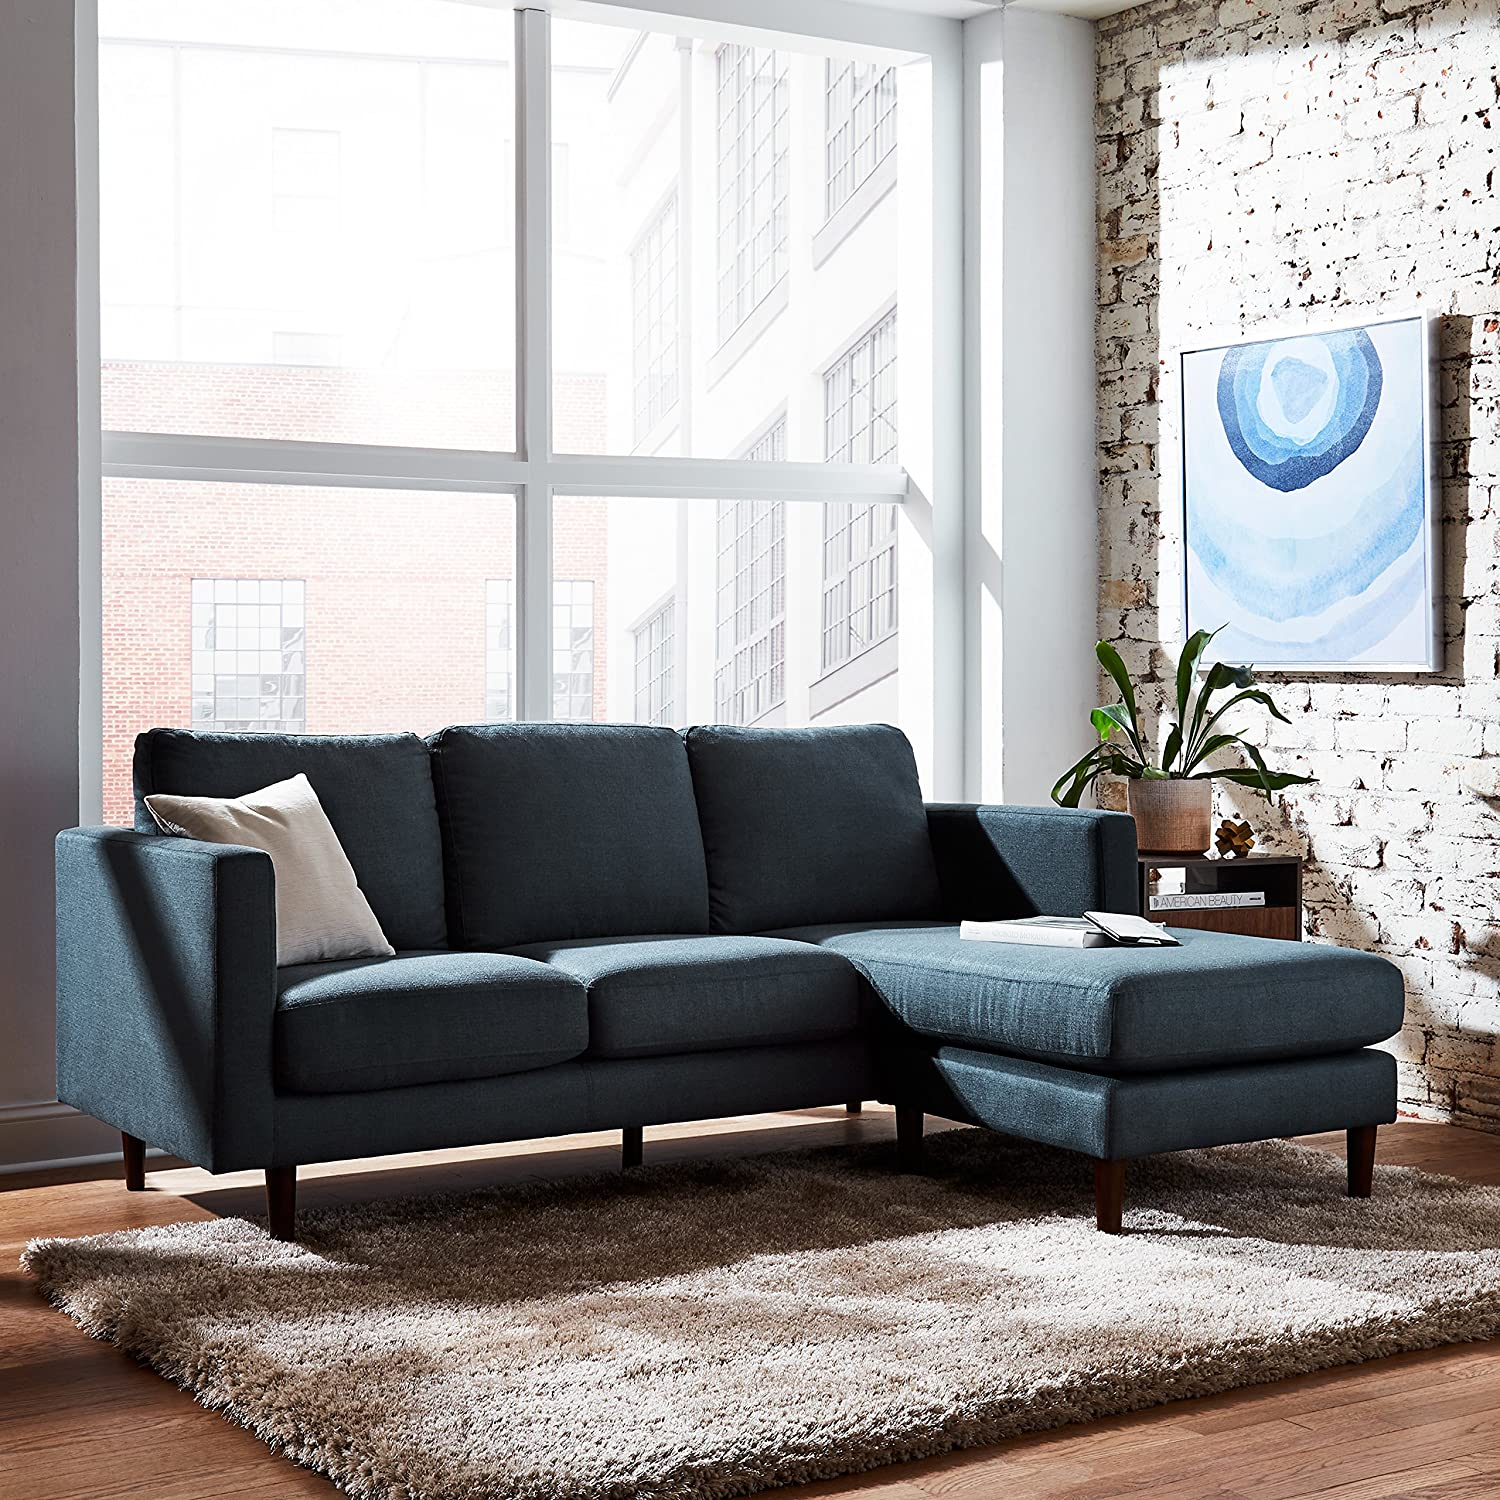 Up to 30% off Furniture from Amazon Brands